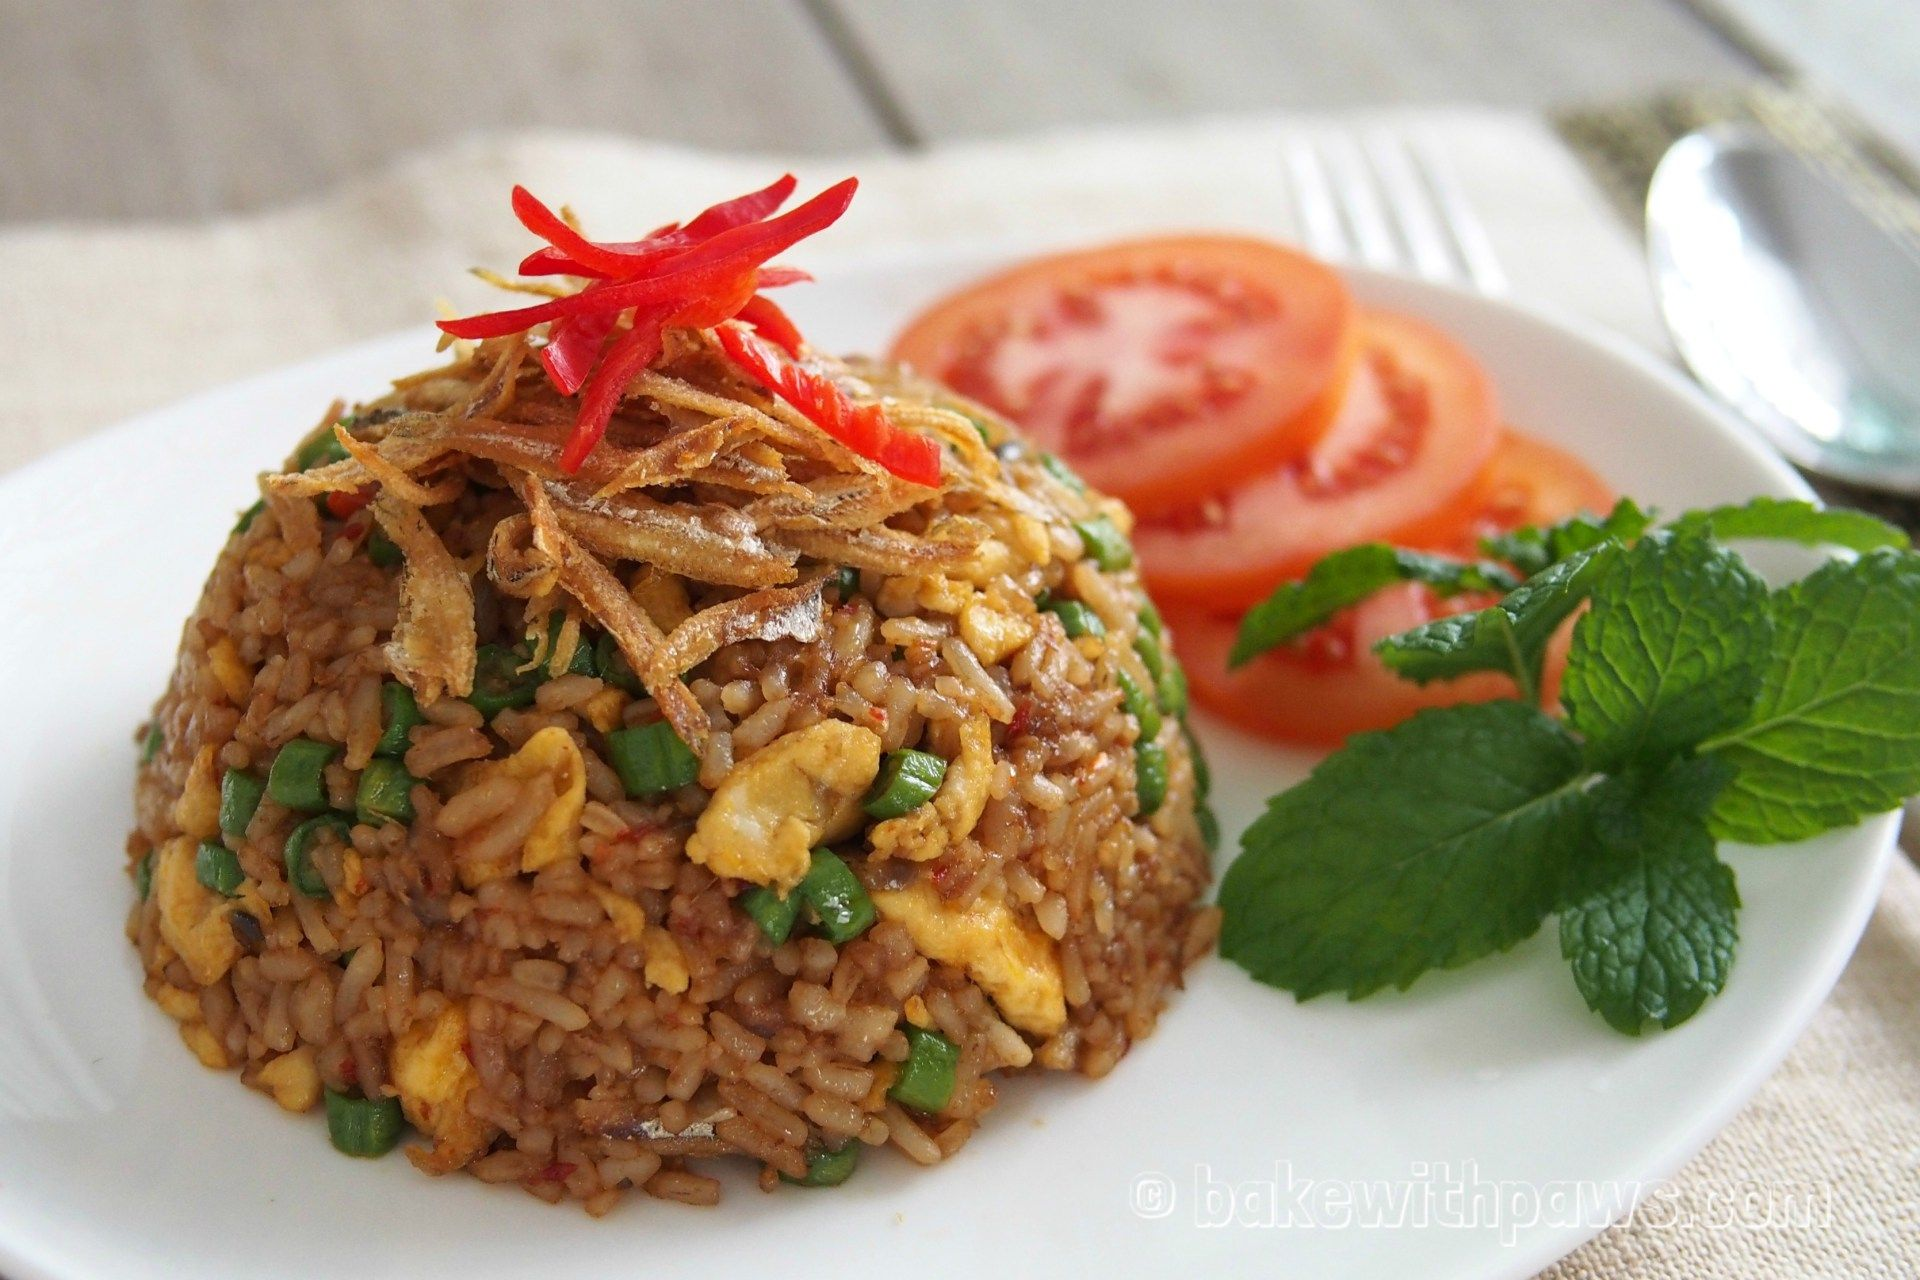 Nasi Goreng Kampung Is A Malay Style Fried Rice That Is Almost Always Found In The All Day Dining Menu Of A Nasi Goreng Kampung Nasi Goreng Recipe Nasi Goreng